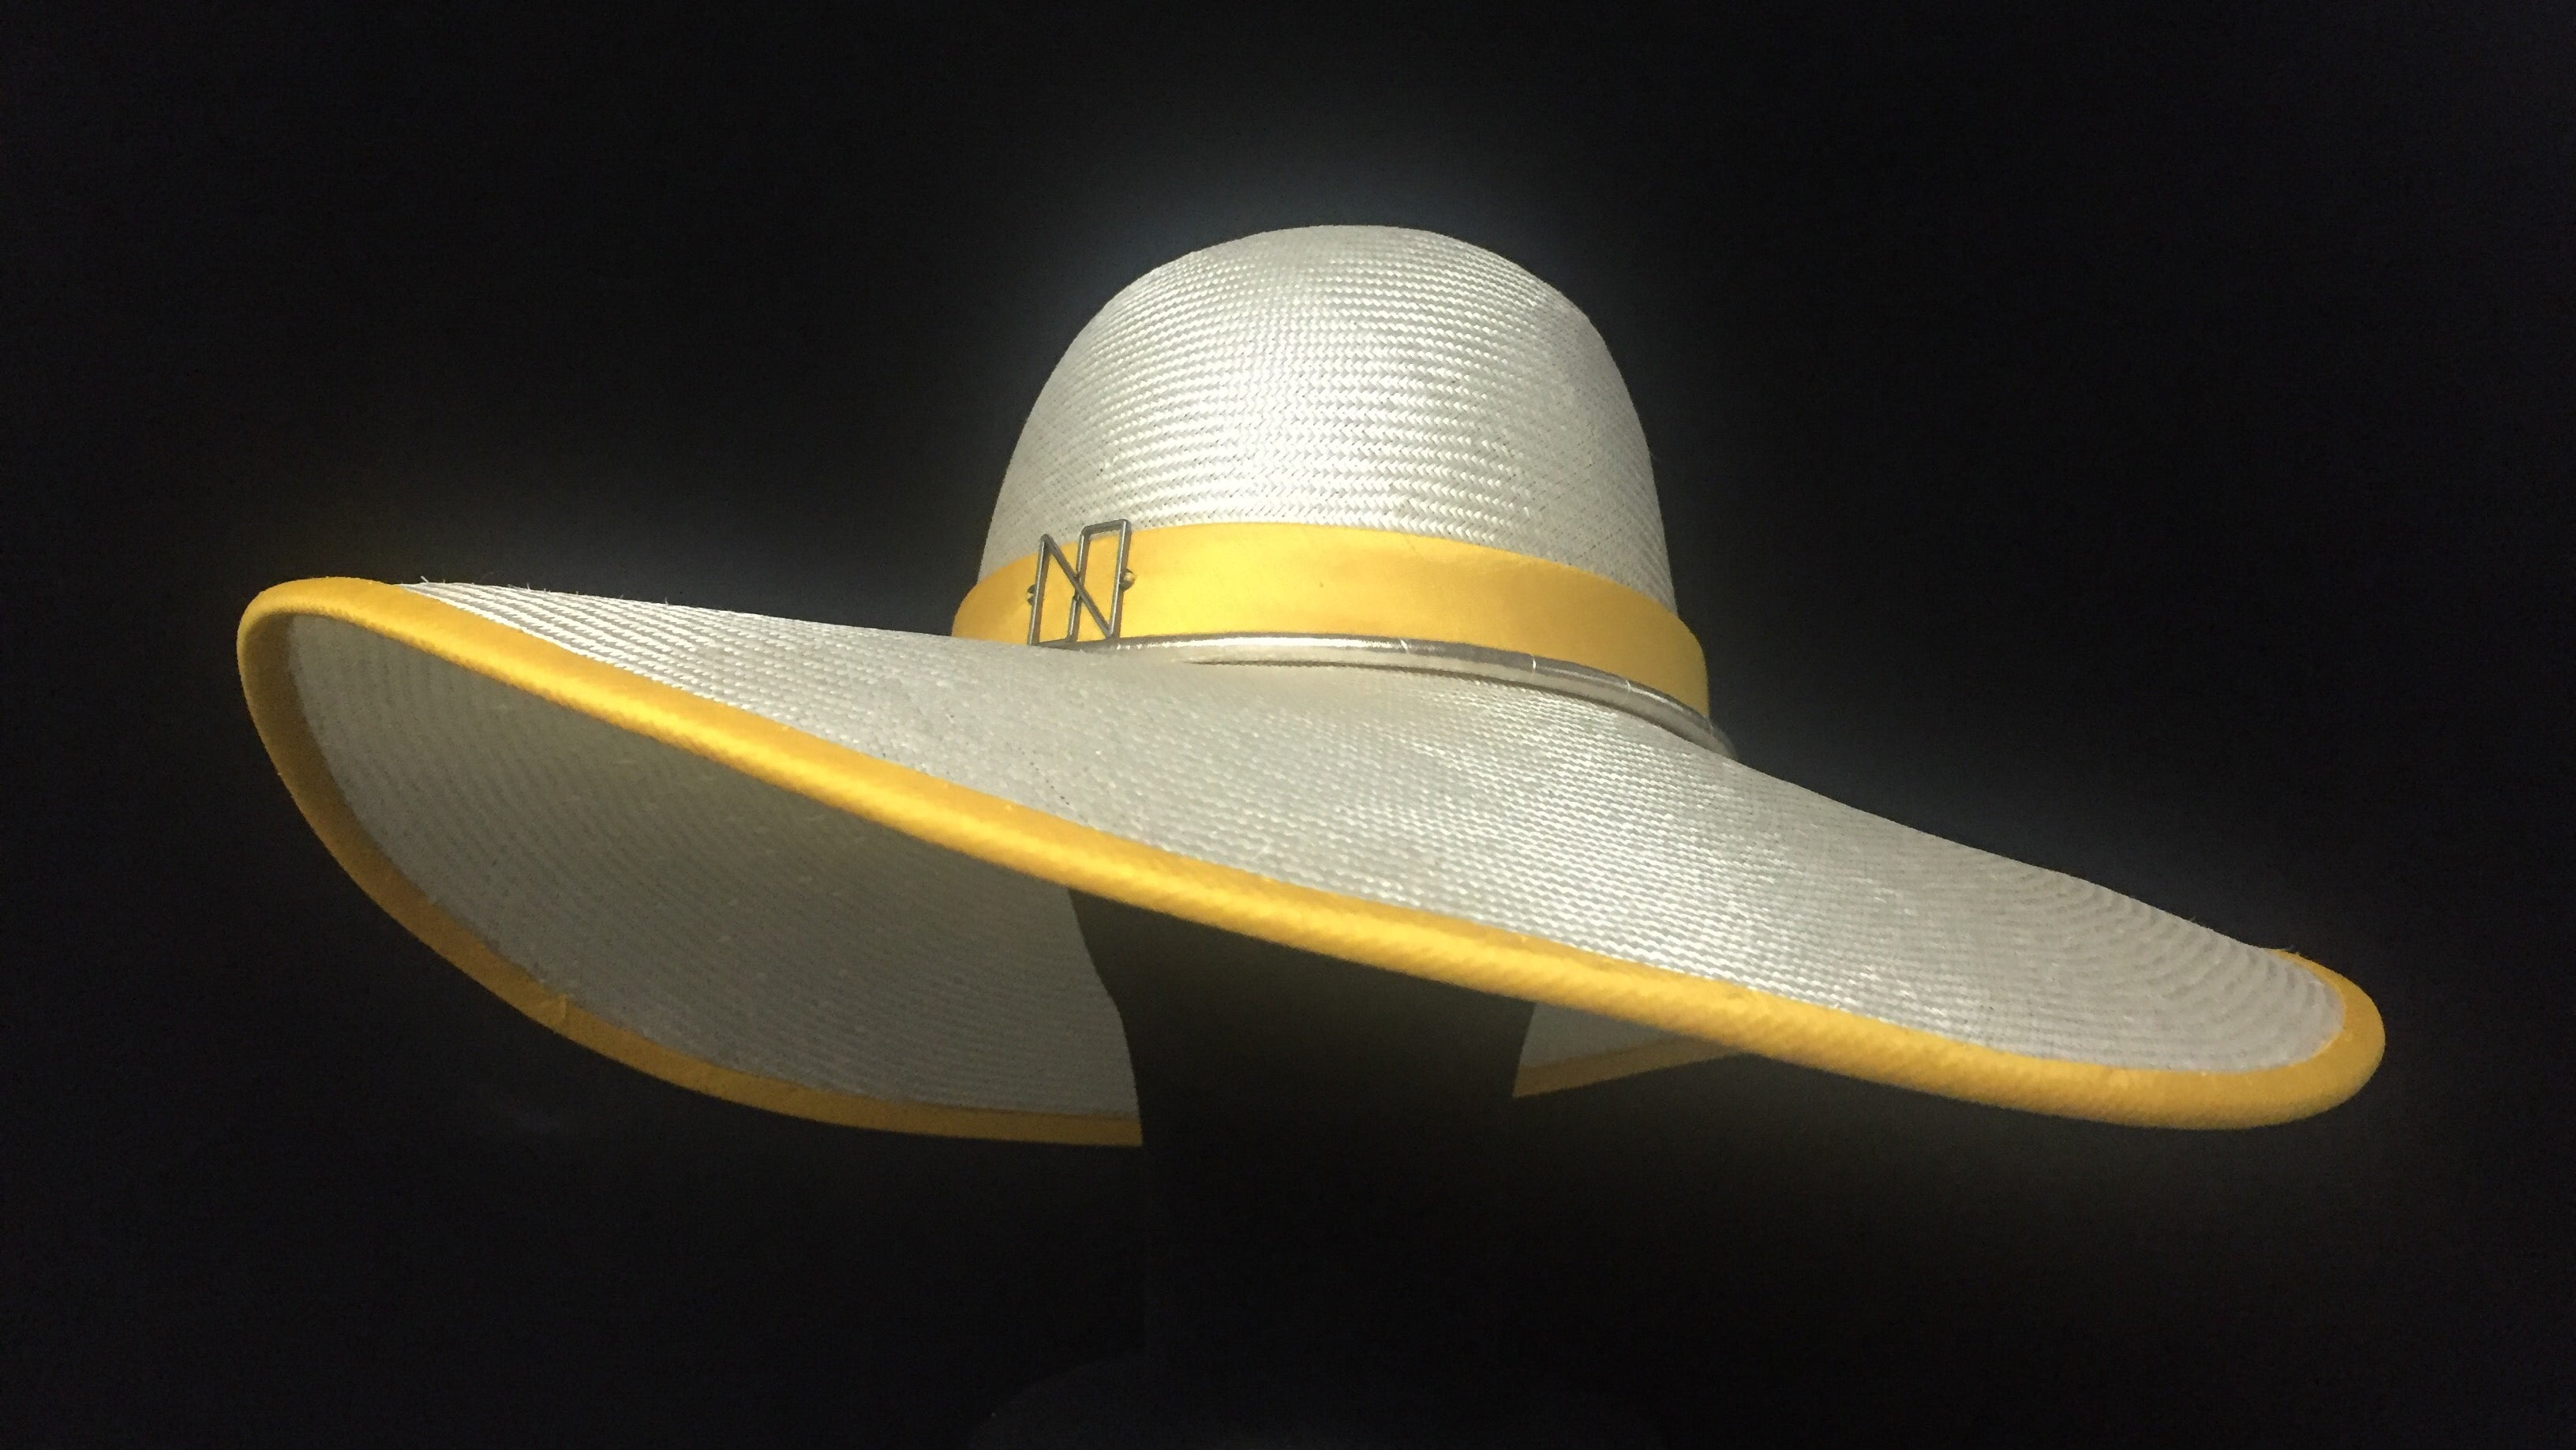 Allure - Wide Brim Designer Straw Hat with yellow trim - NOELEEN MILLINERY HONG KONG